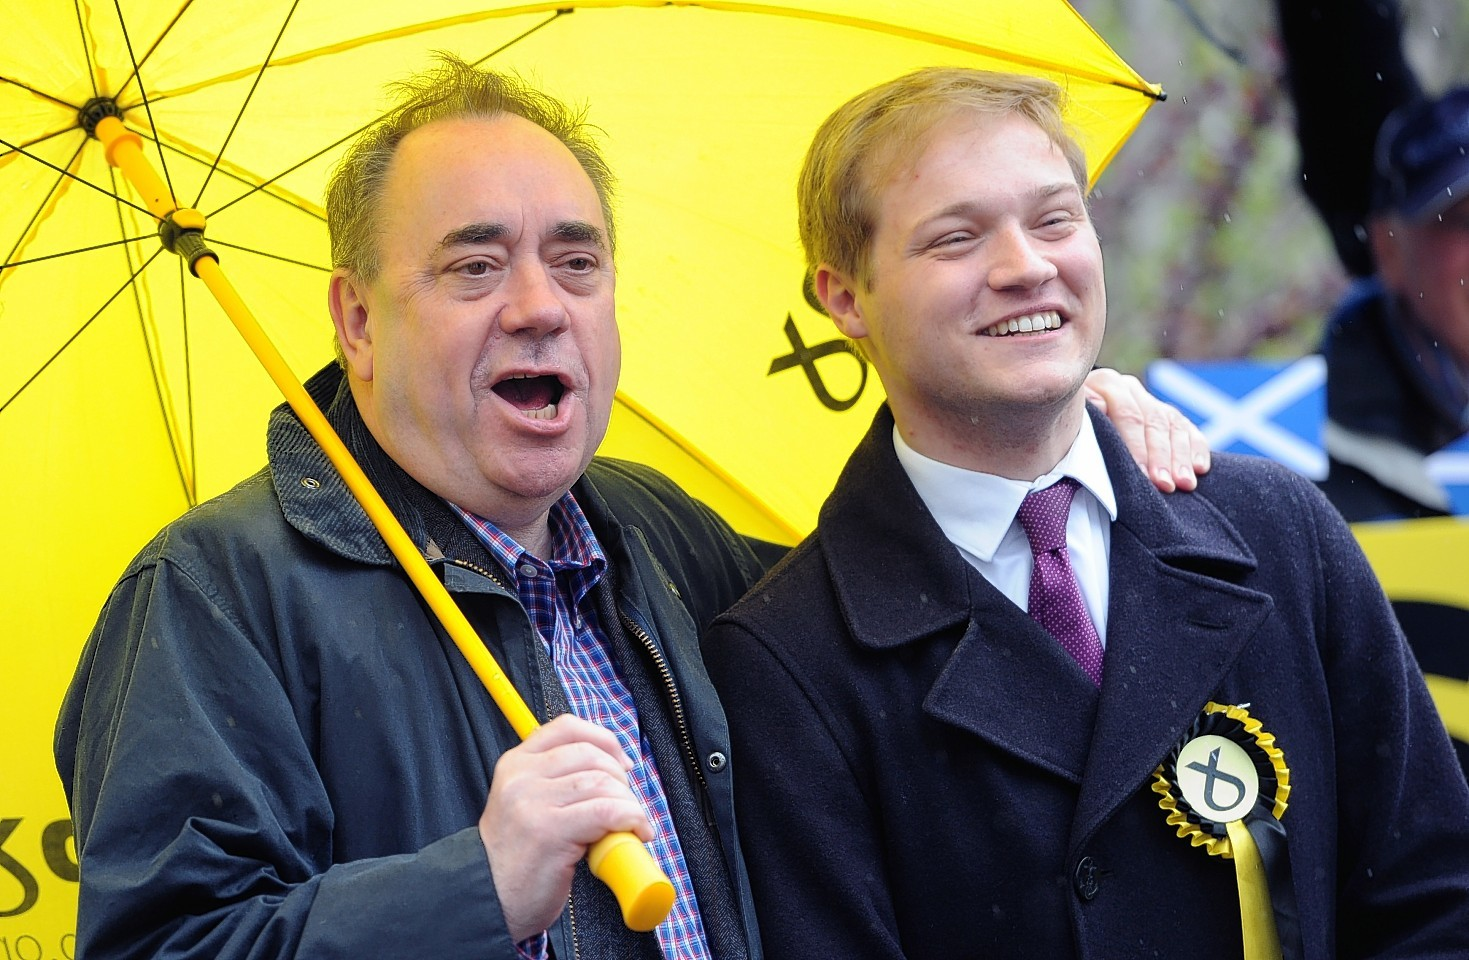 Alex Salmond and Stuart Donaldson on the streets campaigning in Kemnay